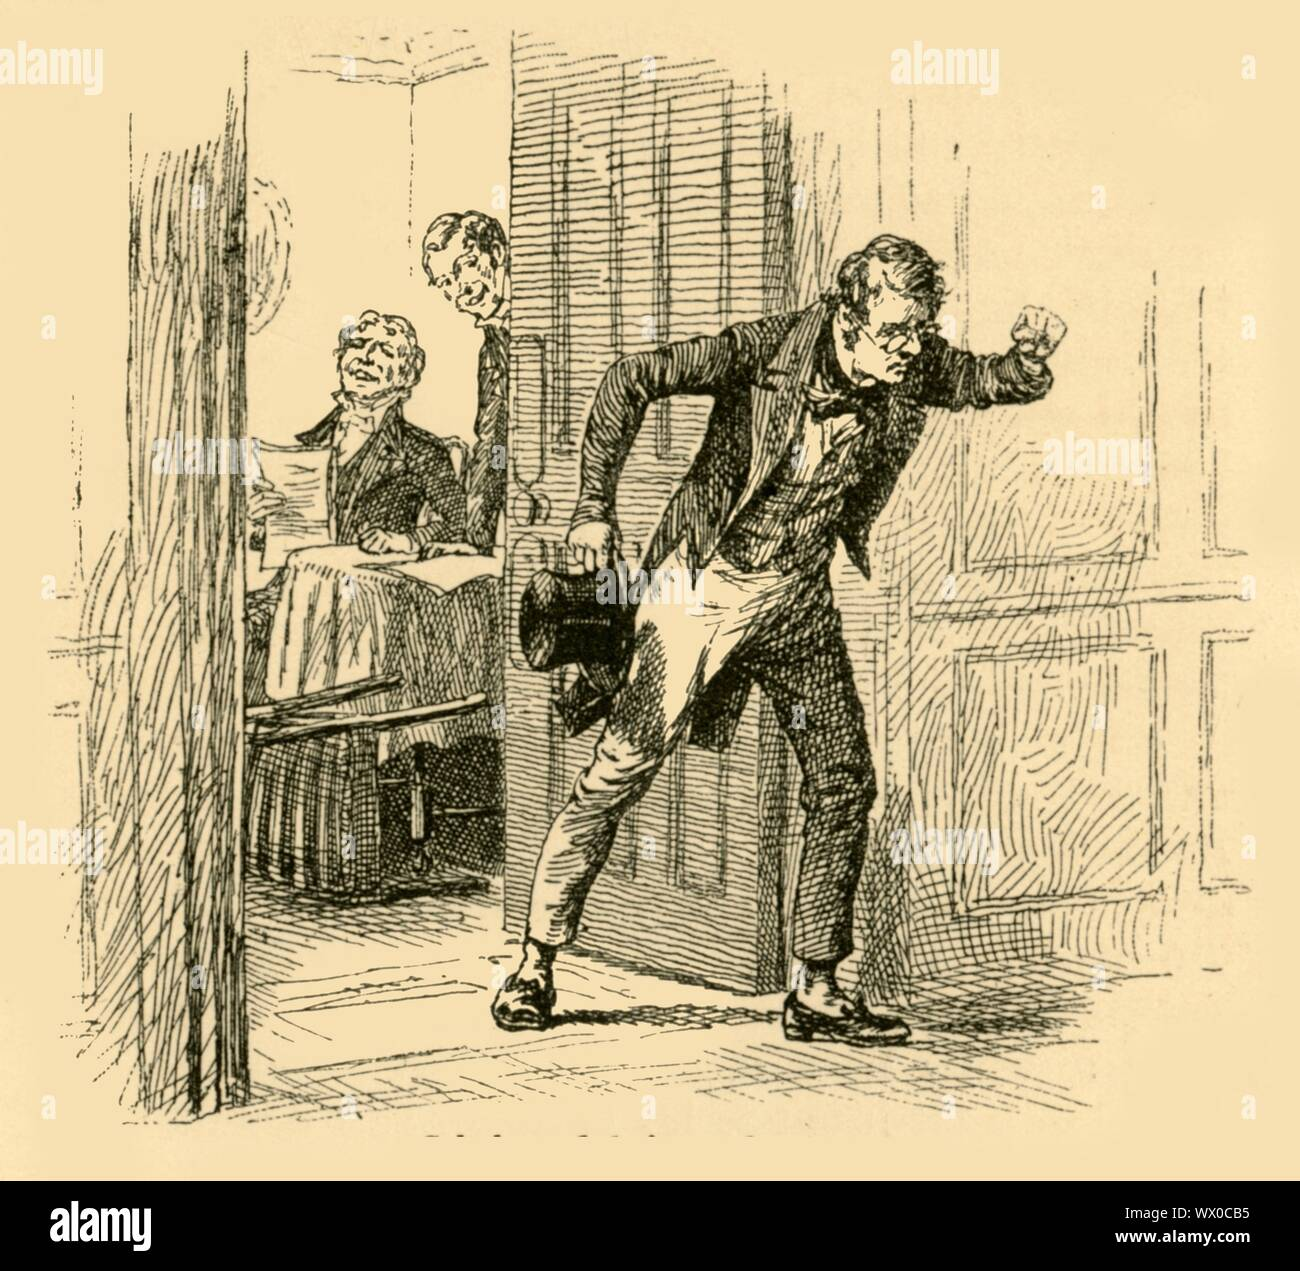 'Schubert fled from the room', (1907). In 1822, the young Schubert meets the celebrated composer Beethoven: '...a courteous but somewhat formal welcome was accorded them. This in itself was bad enough for poor Schubert, whose courage straightway forsook him; but when Beethoven proceeded to hand to him the bundle of paper and the carpenter's pencil which, owing to his deafness, he kept in readiness for his visitors, Schubert's shyness prevented him writing a single word...Beethoven, looking through the composition, lighted upon something to which he took exception, and forthwith proceeded to po Stock Photo